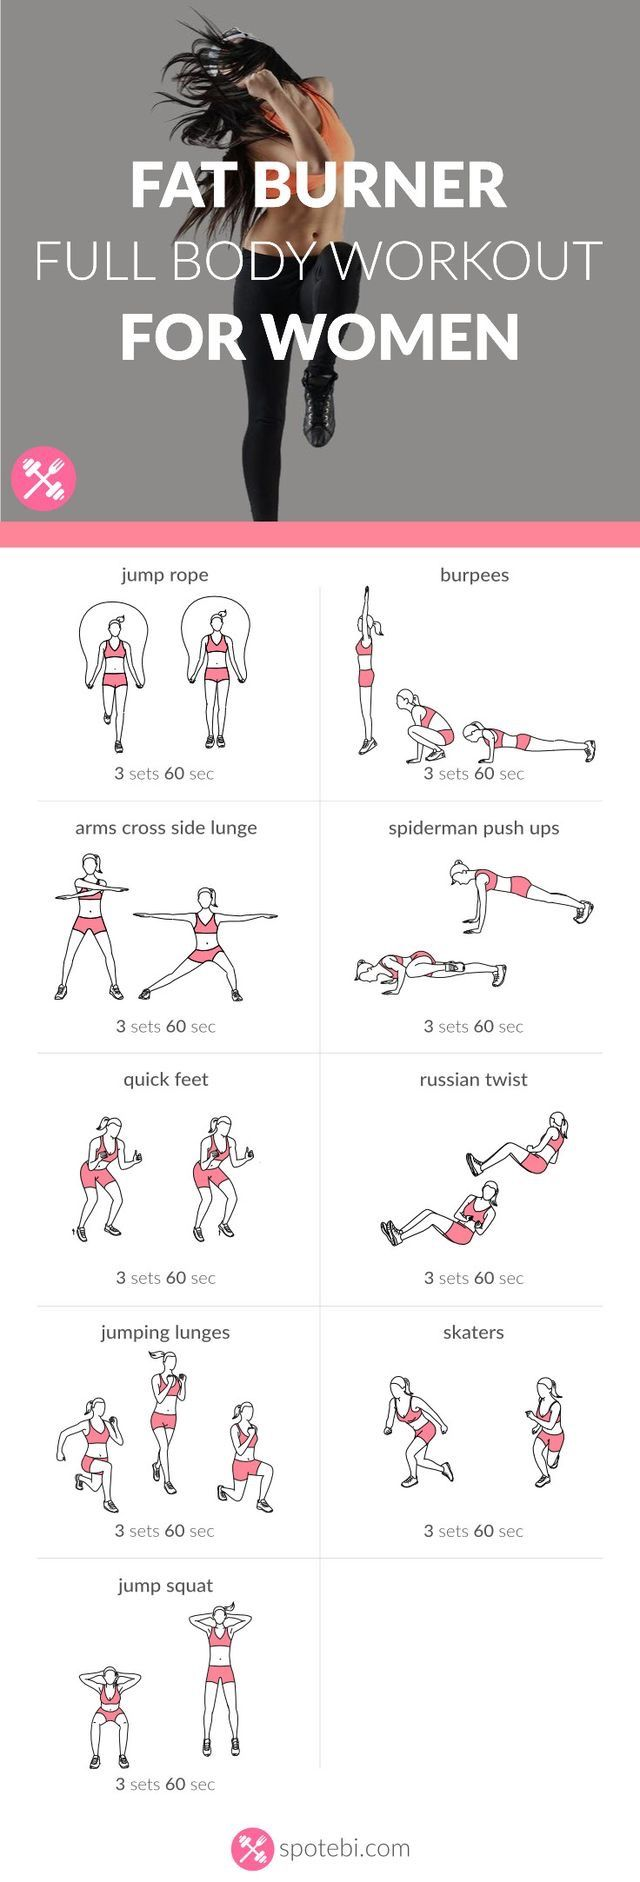 21 Best Arms Images On Pinterest Workouts Exercise And Chest Back Superset Circuit Workout Tone Tighten Increase Your Stamina Endurance With This Bodyweight Fat Burner Routine For Women A 30 Minute Full Body To Sculpt